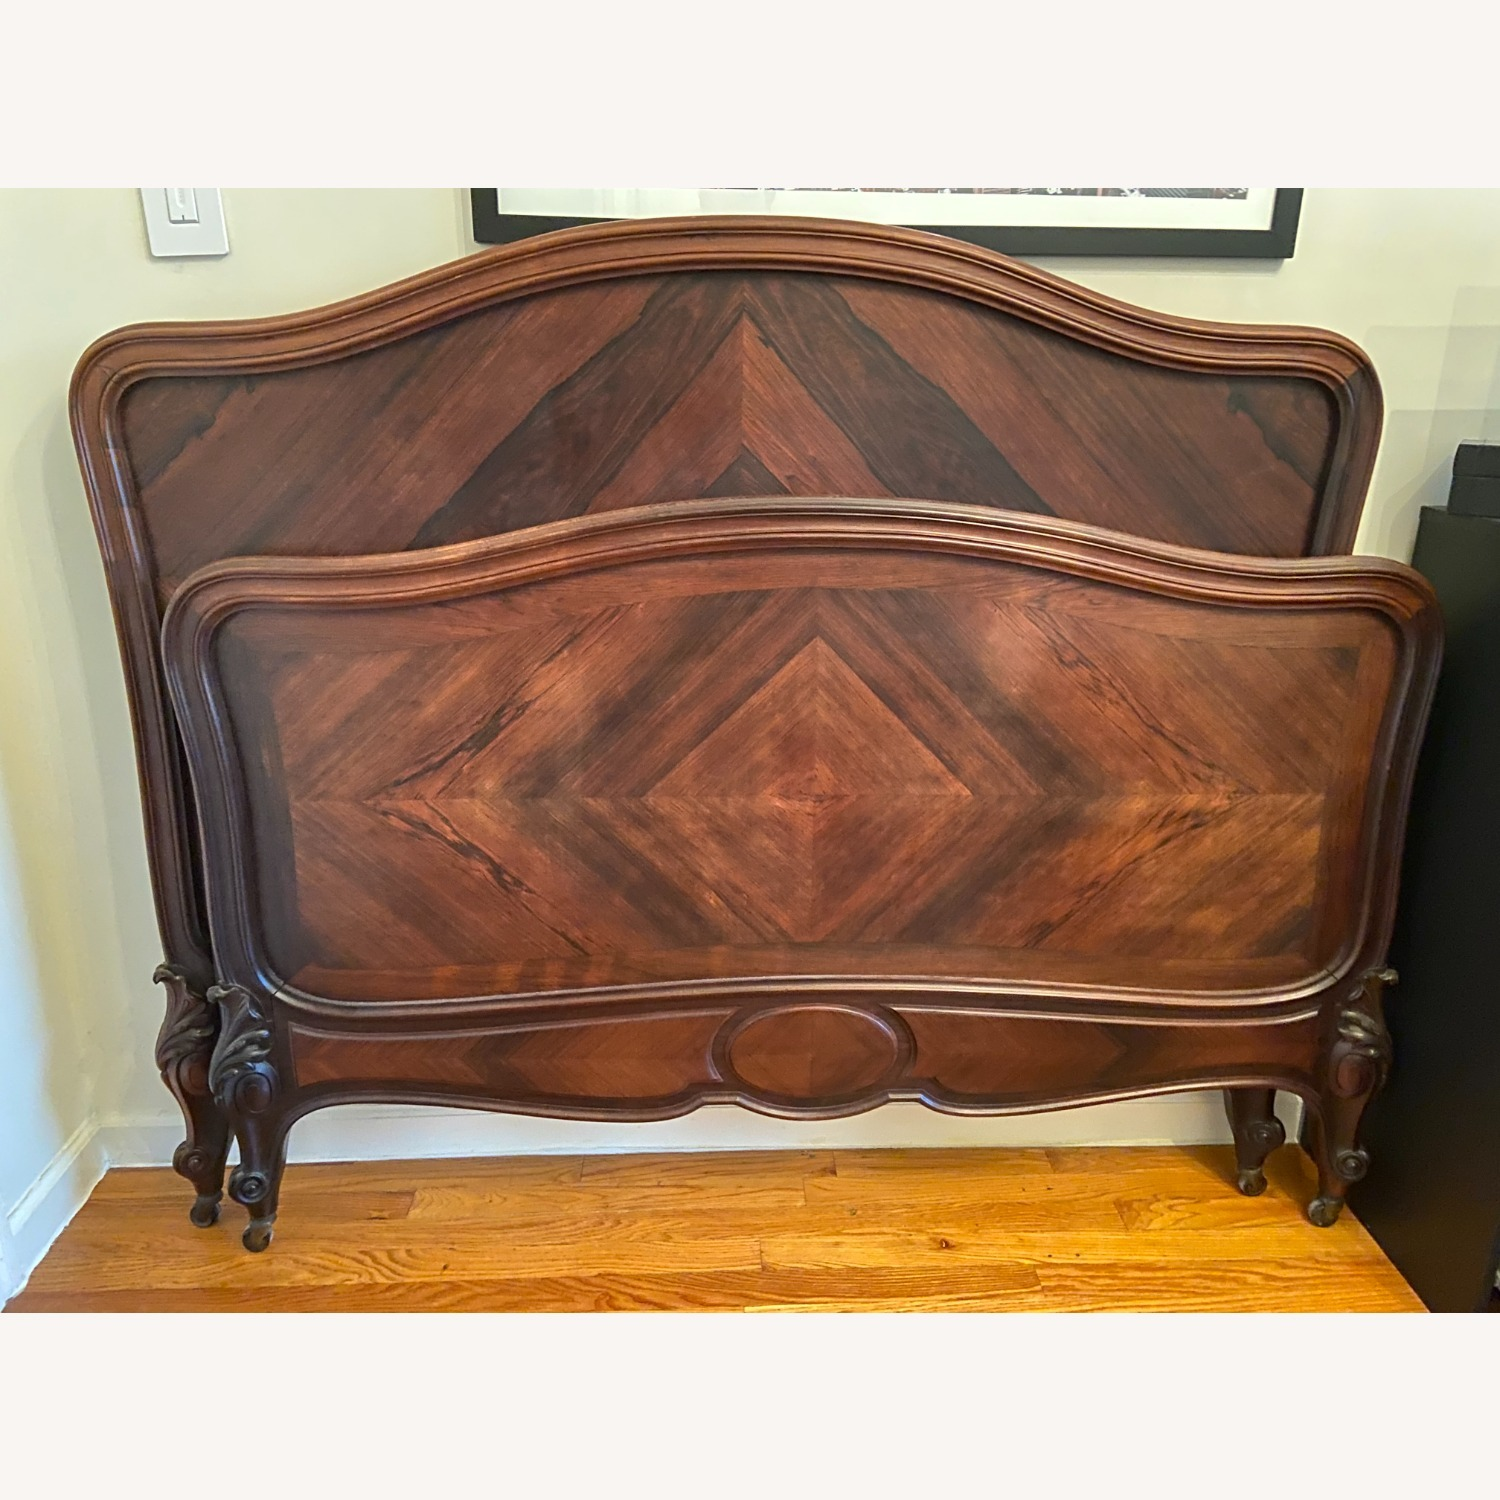 1880's Antique French Rosewood Bed - image-1